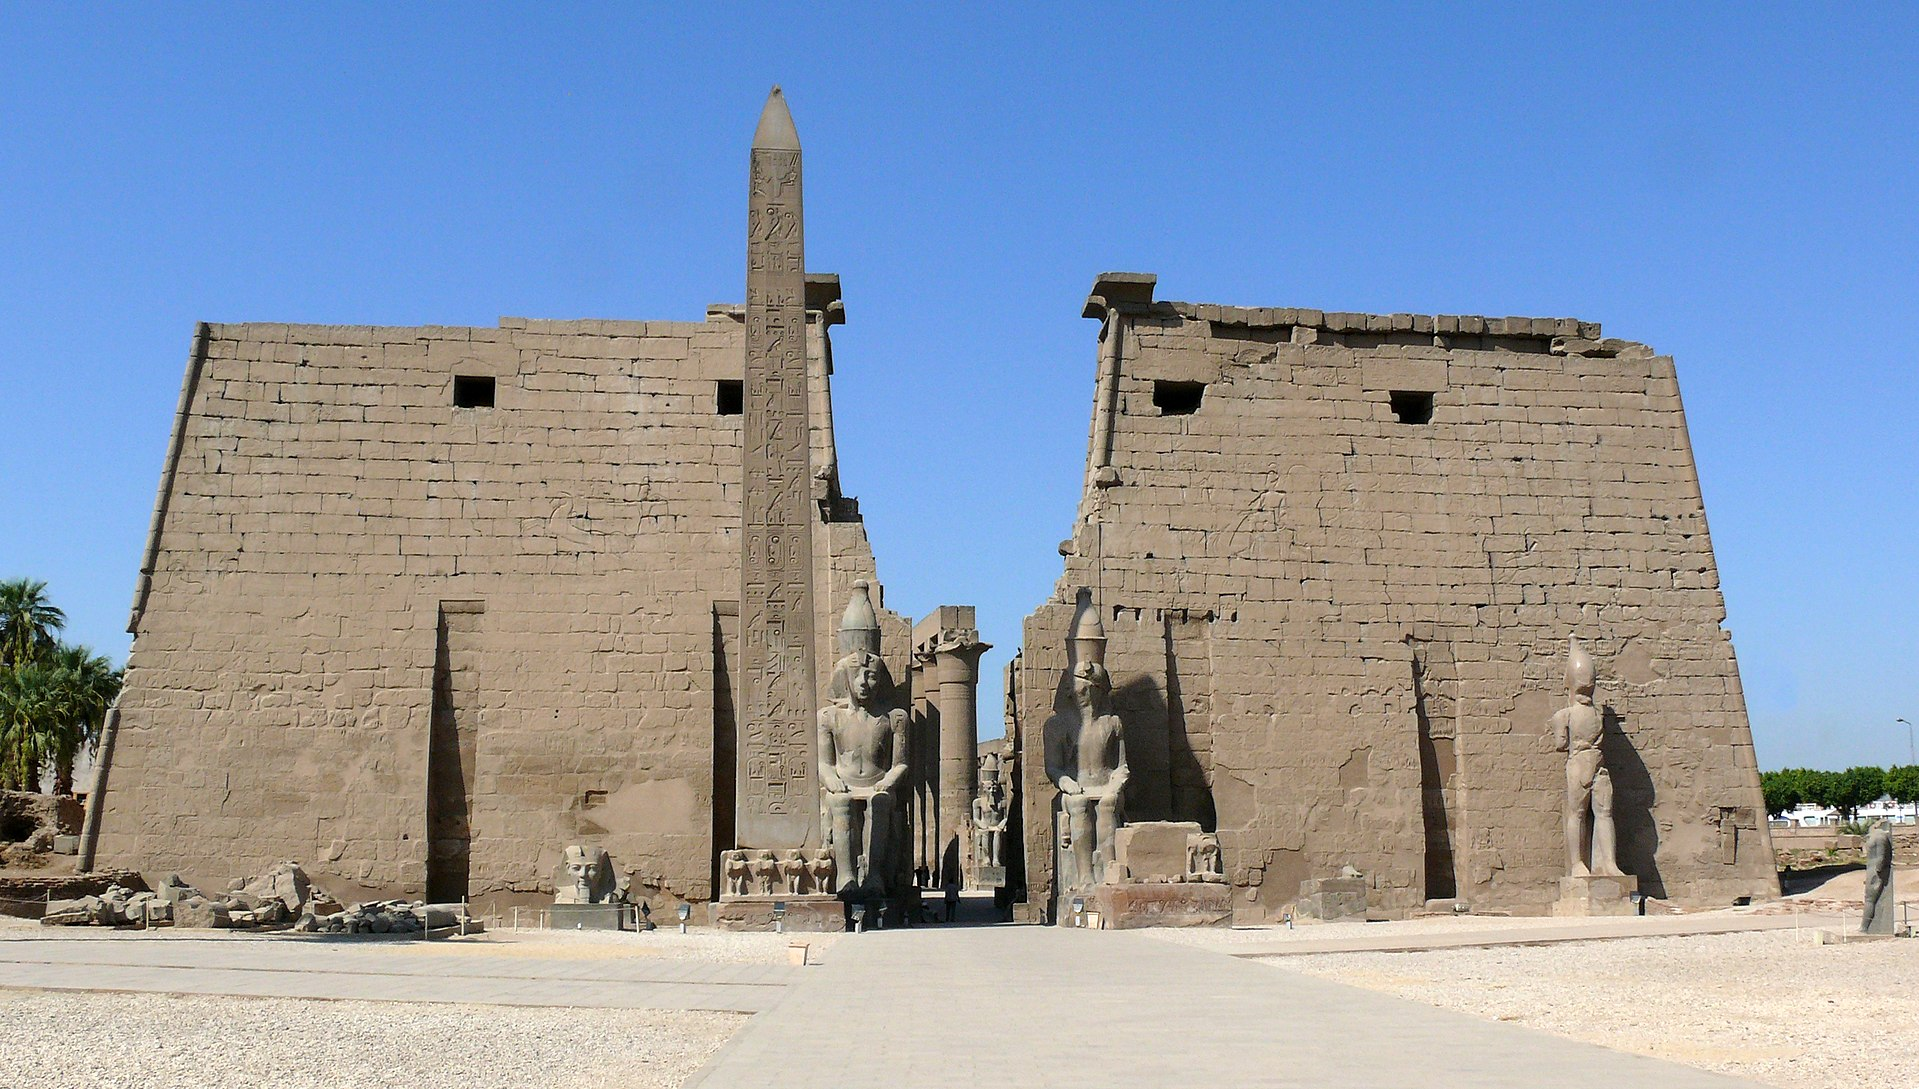 the role of temples in ancient egypt The religions of ancient mesopotamia and egypt have long been studied by fascinated students, scholars, and the like the remains left behind from these civilizations have provided great insight into their culture, philosophy, and religion for these and most ancient cultures, the temple was the.